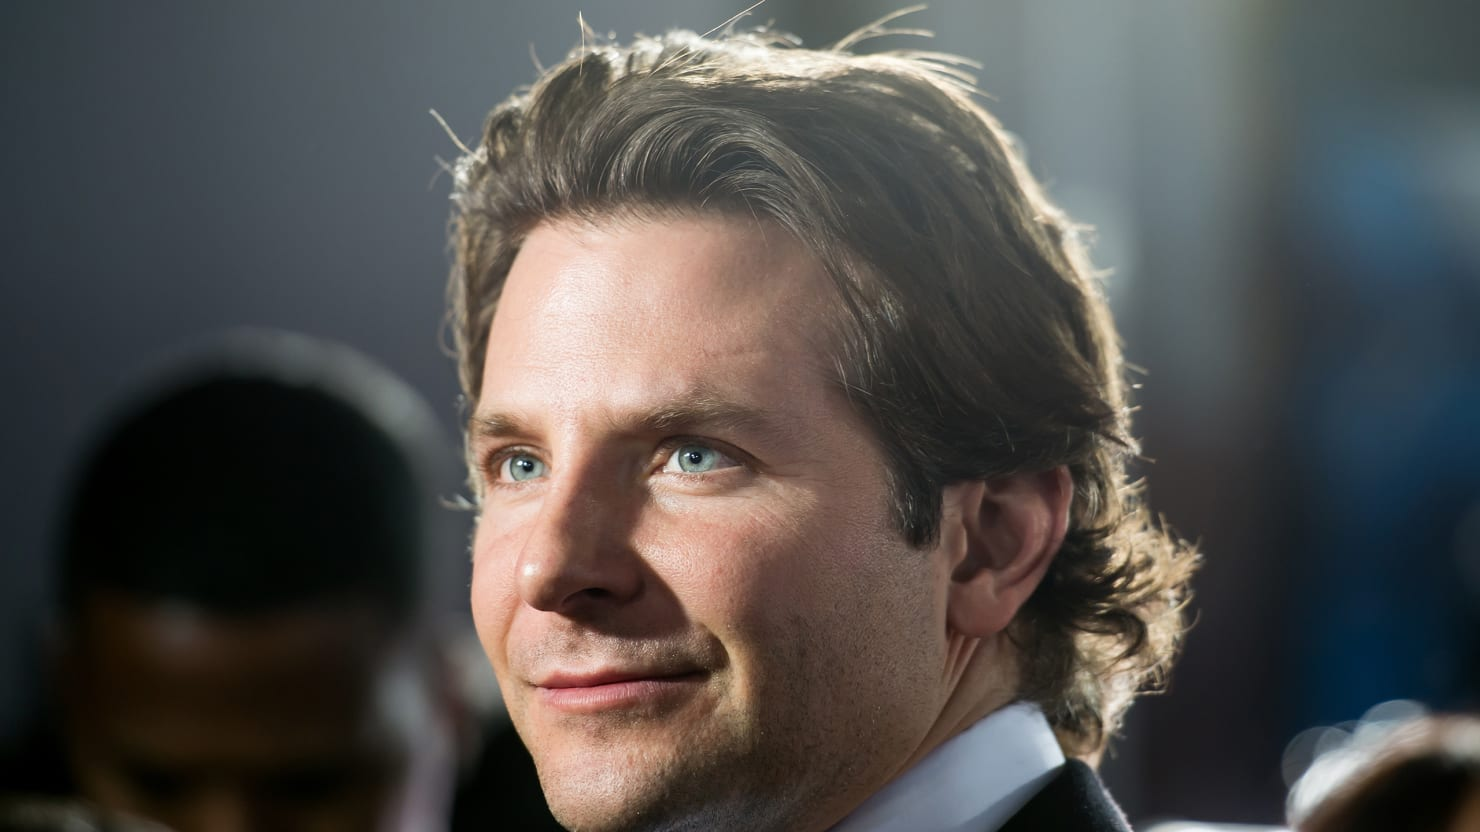 Bradley Cooper Responds to Lefty, Anti-War Criticism of 'American Sniper'